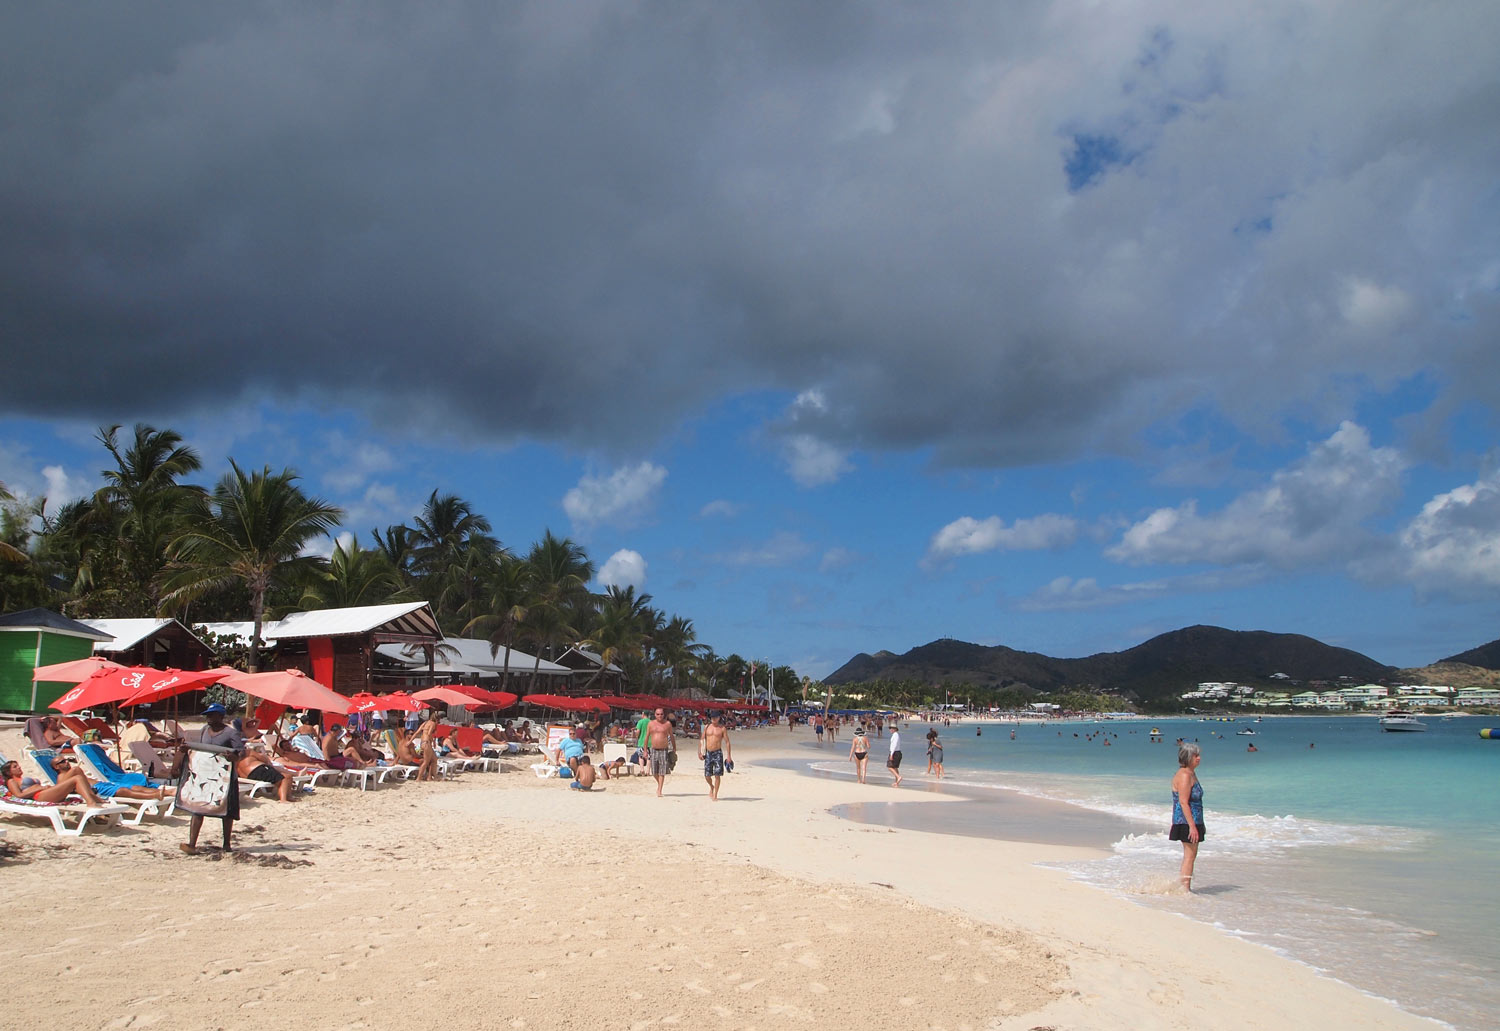 St-Martin-Orient-beach-Before-Hurrican-Irma.jpg